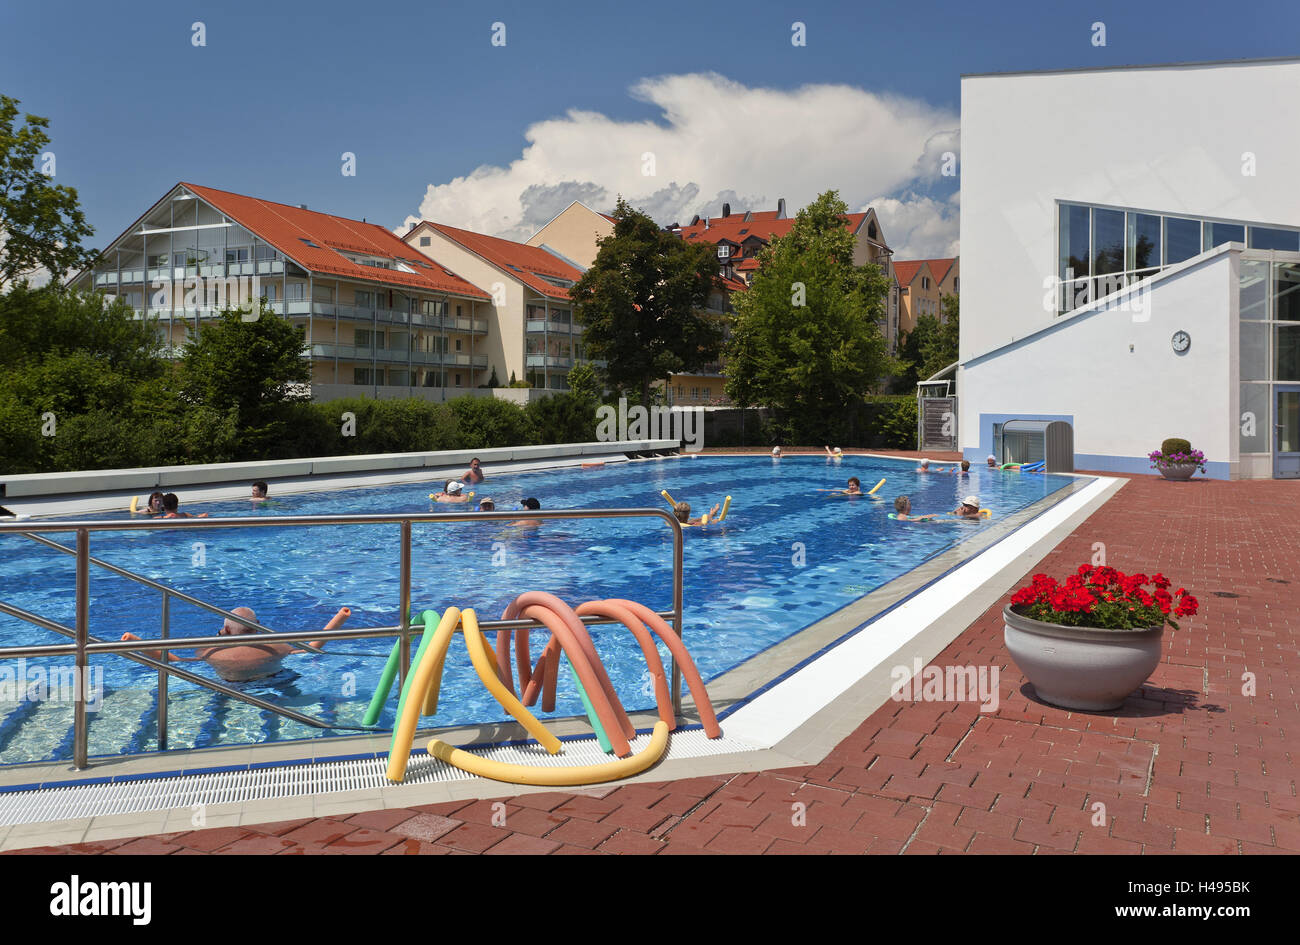 Pool Kaufen Niederbayern People Enjoy Bath Swimming Pool Stockfotos People Enjoy Bath